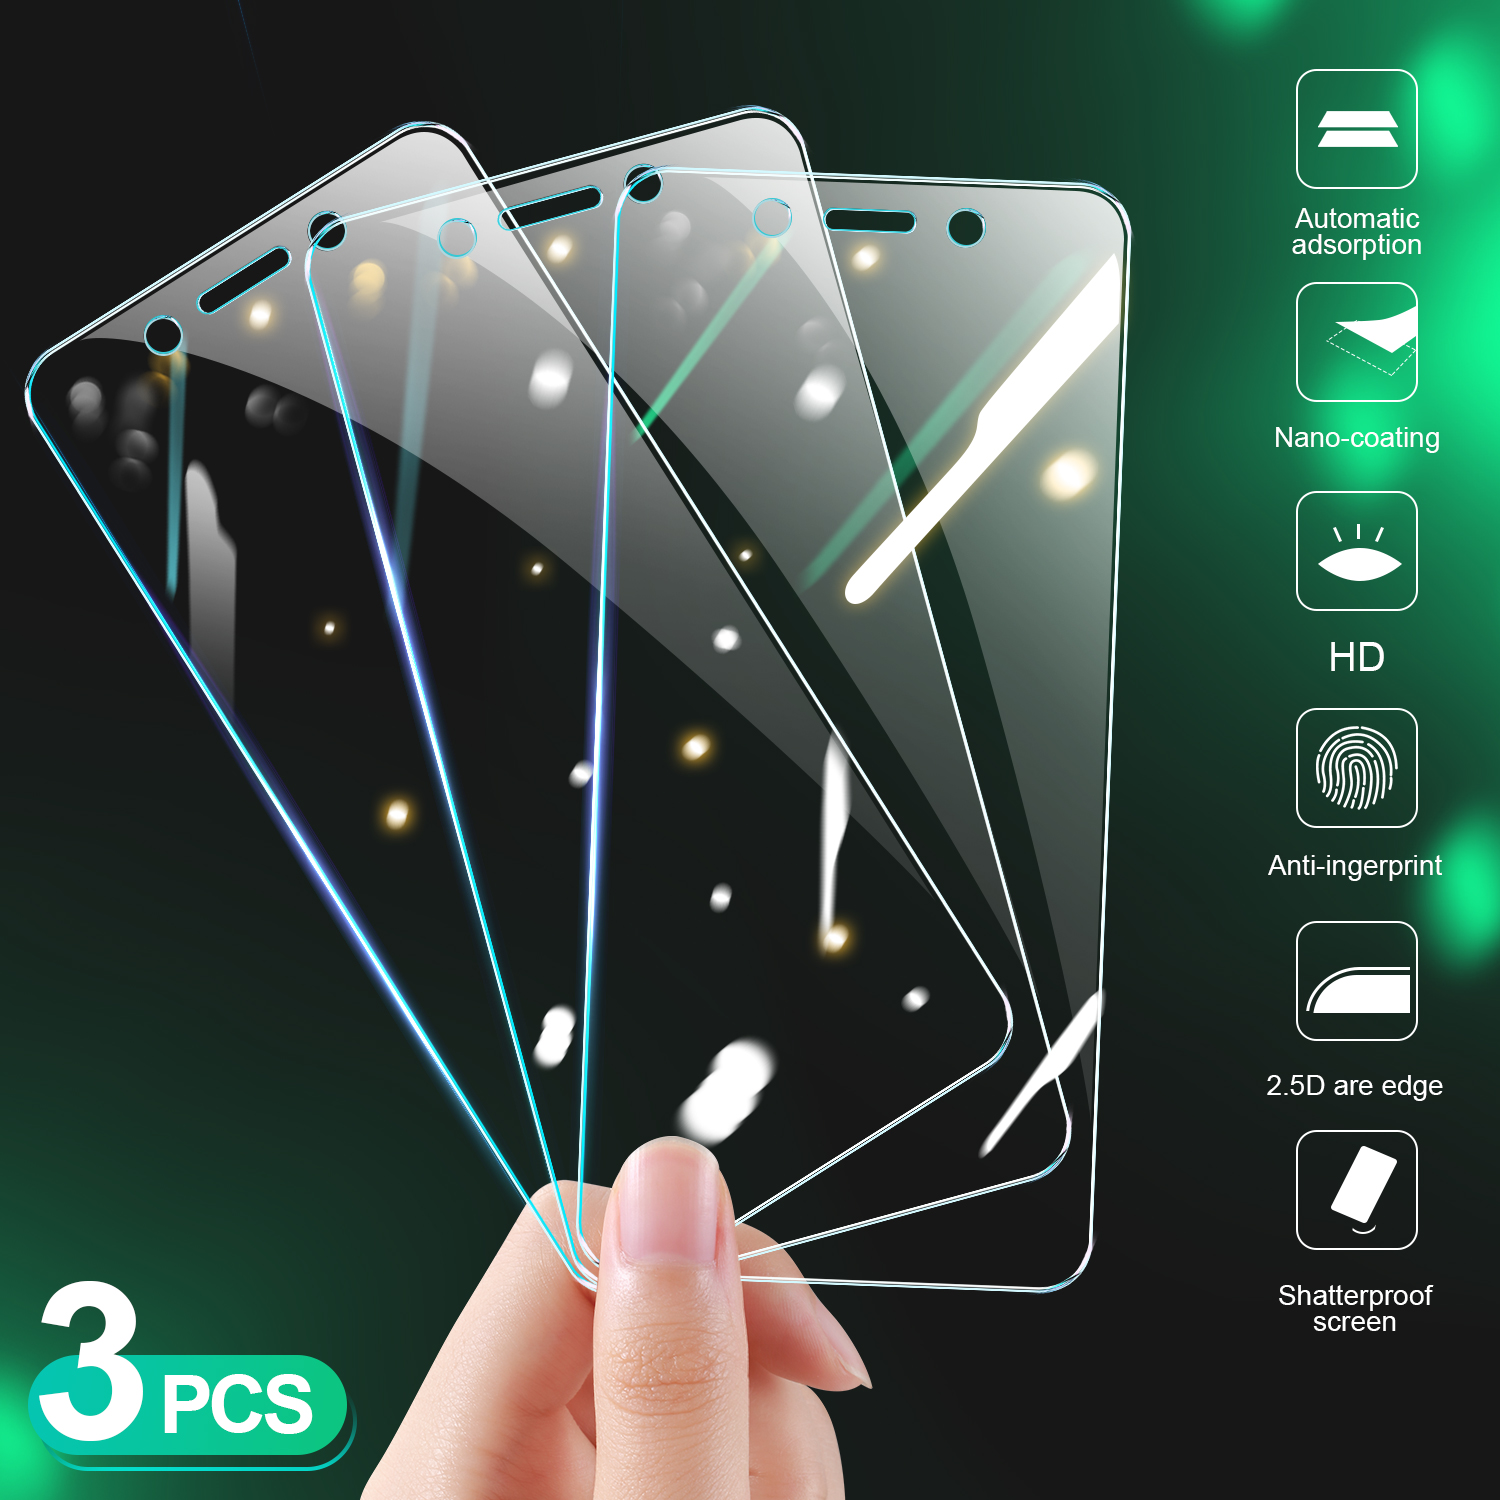 3Pcs Protective Glass On Redmi 4X 4A 5A 5 Plus S2 Film Screen Protector For Xiaomi Redmi Note 4 4X 5 5A Pro Tempered Glass 9H HD 1